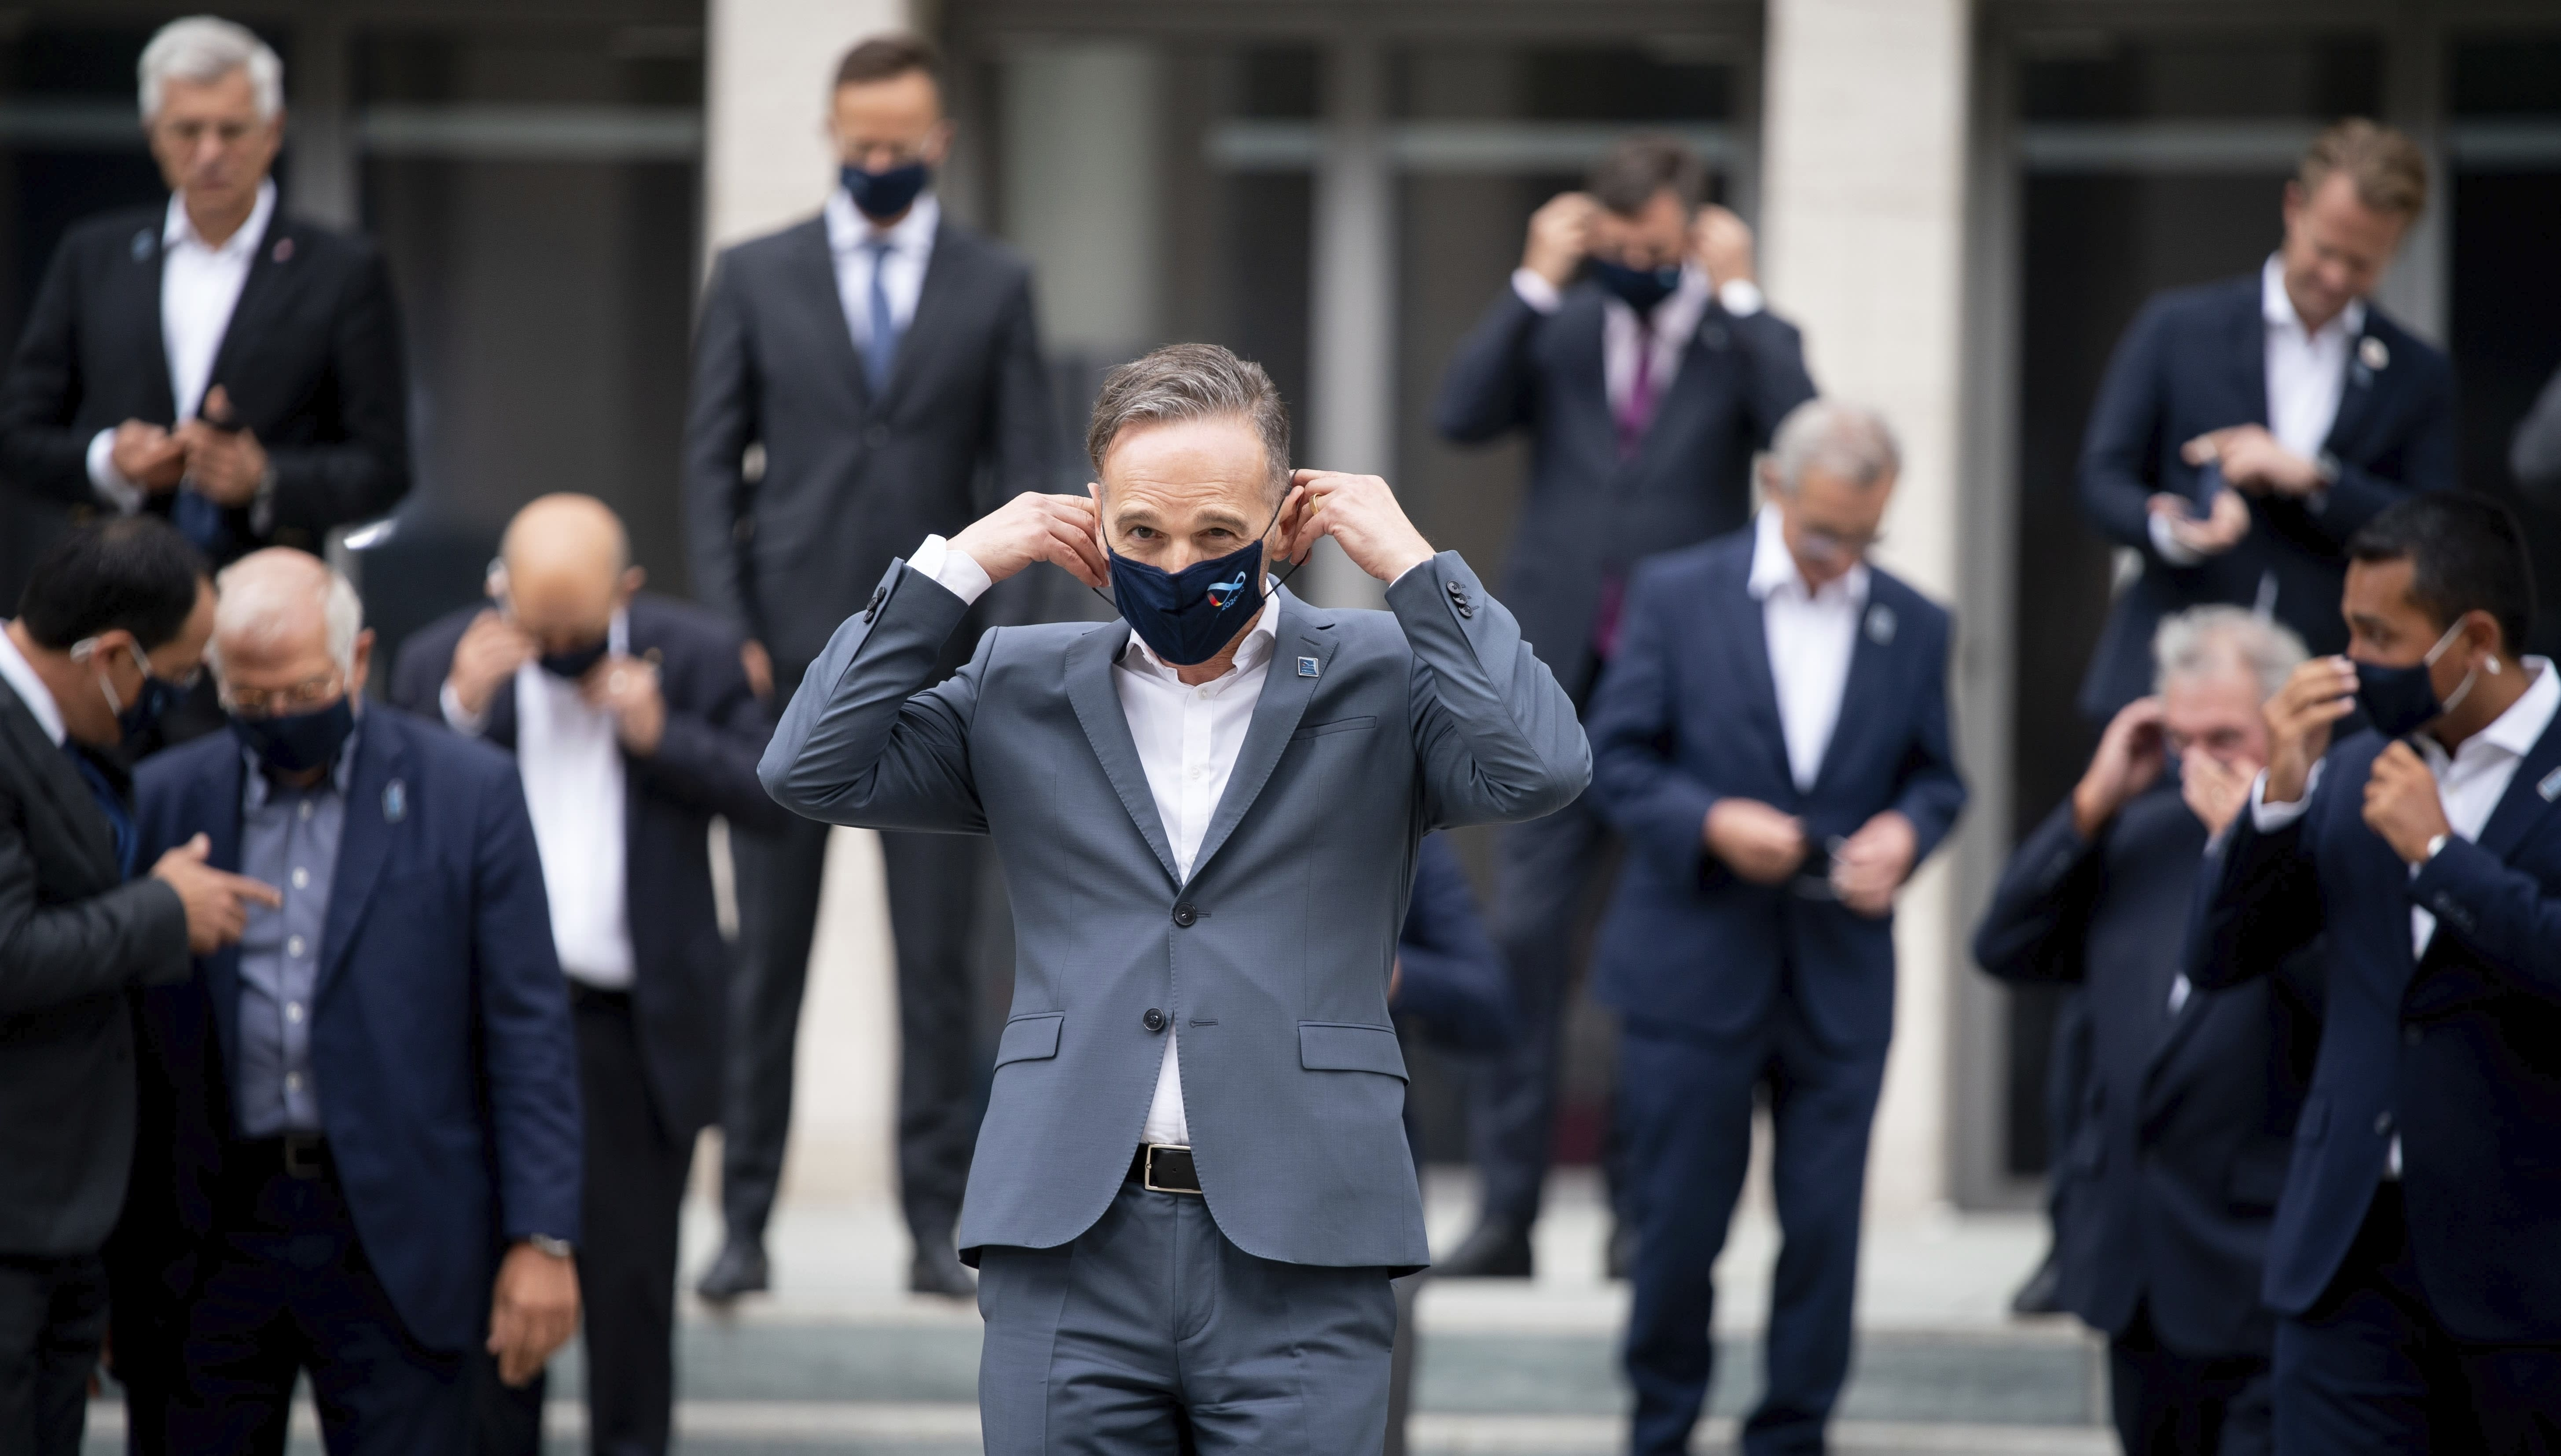 Foreign Minister Heiko Maas, wearing a mouth-and-nose protector, meets his EU counterparts for the family photo on the fringes of the informal talks between the EU Foreign Ministers and their EU counterparts. The topics of the so-called Gymnich meeting include developments in Belarus and the dispute over natural gas in the eastern Mediterranean between Turkey and the EU states of Greece and Cyprus. (Kay Nietfeld/dpa via AP)